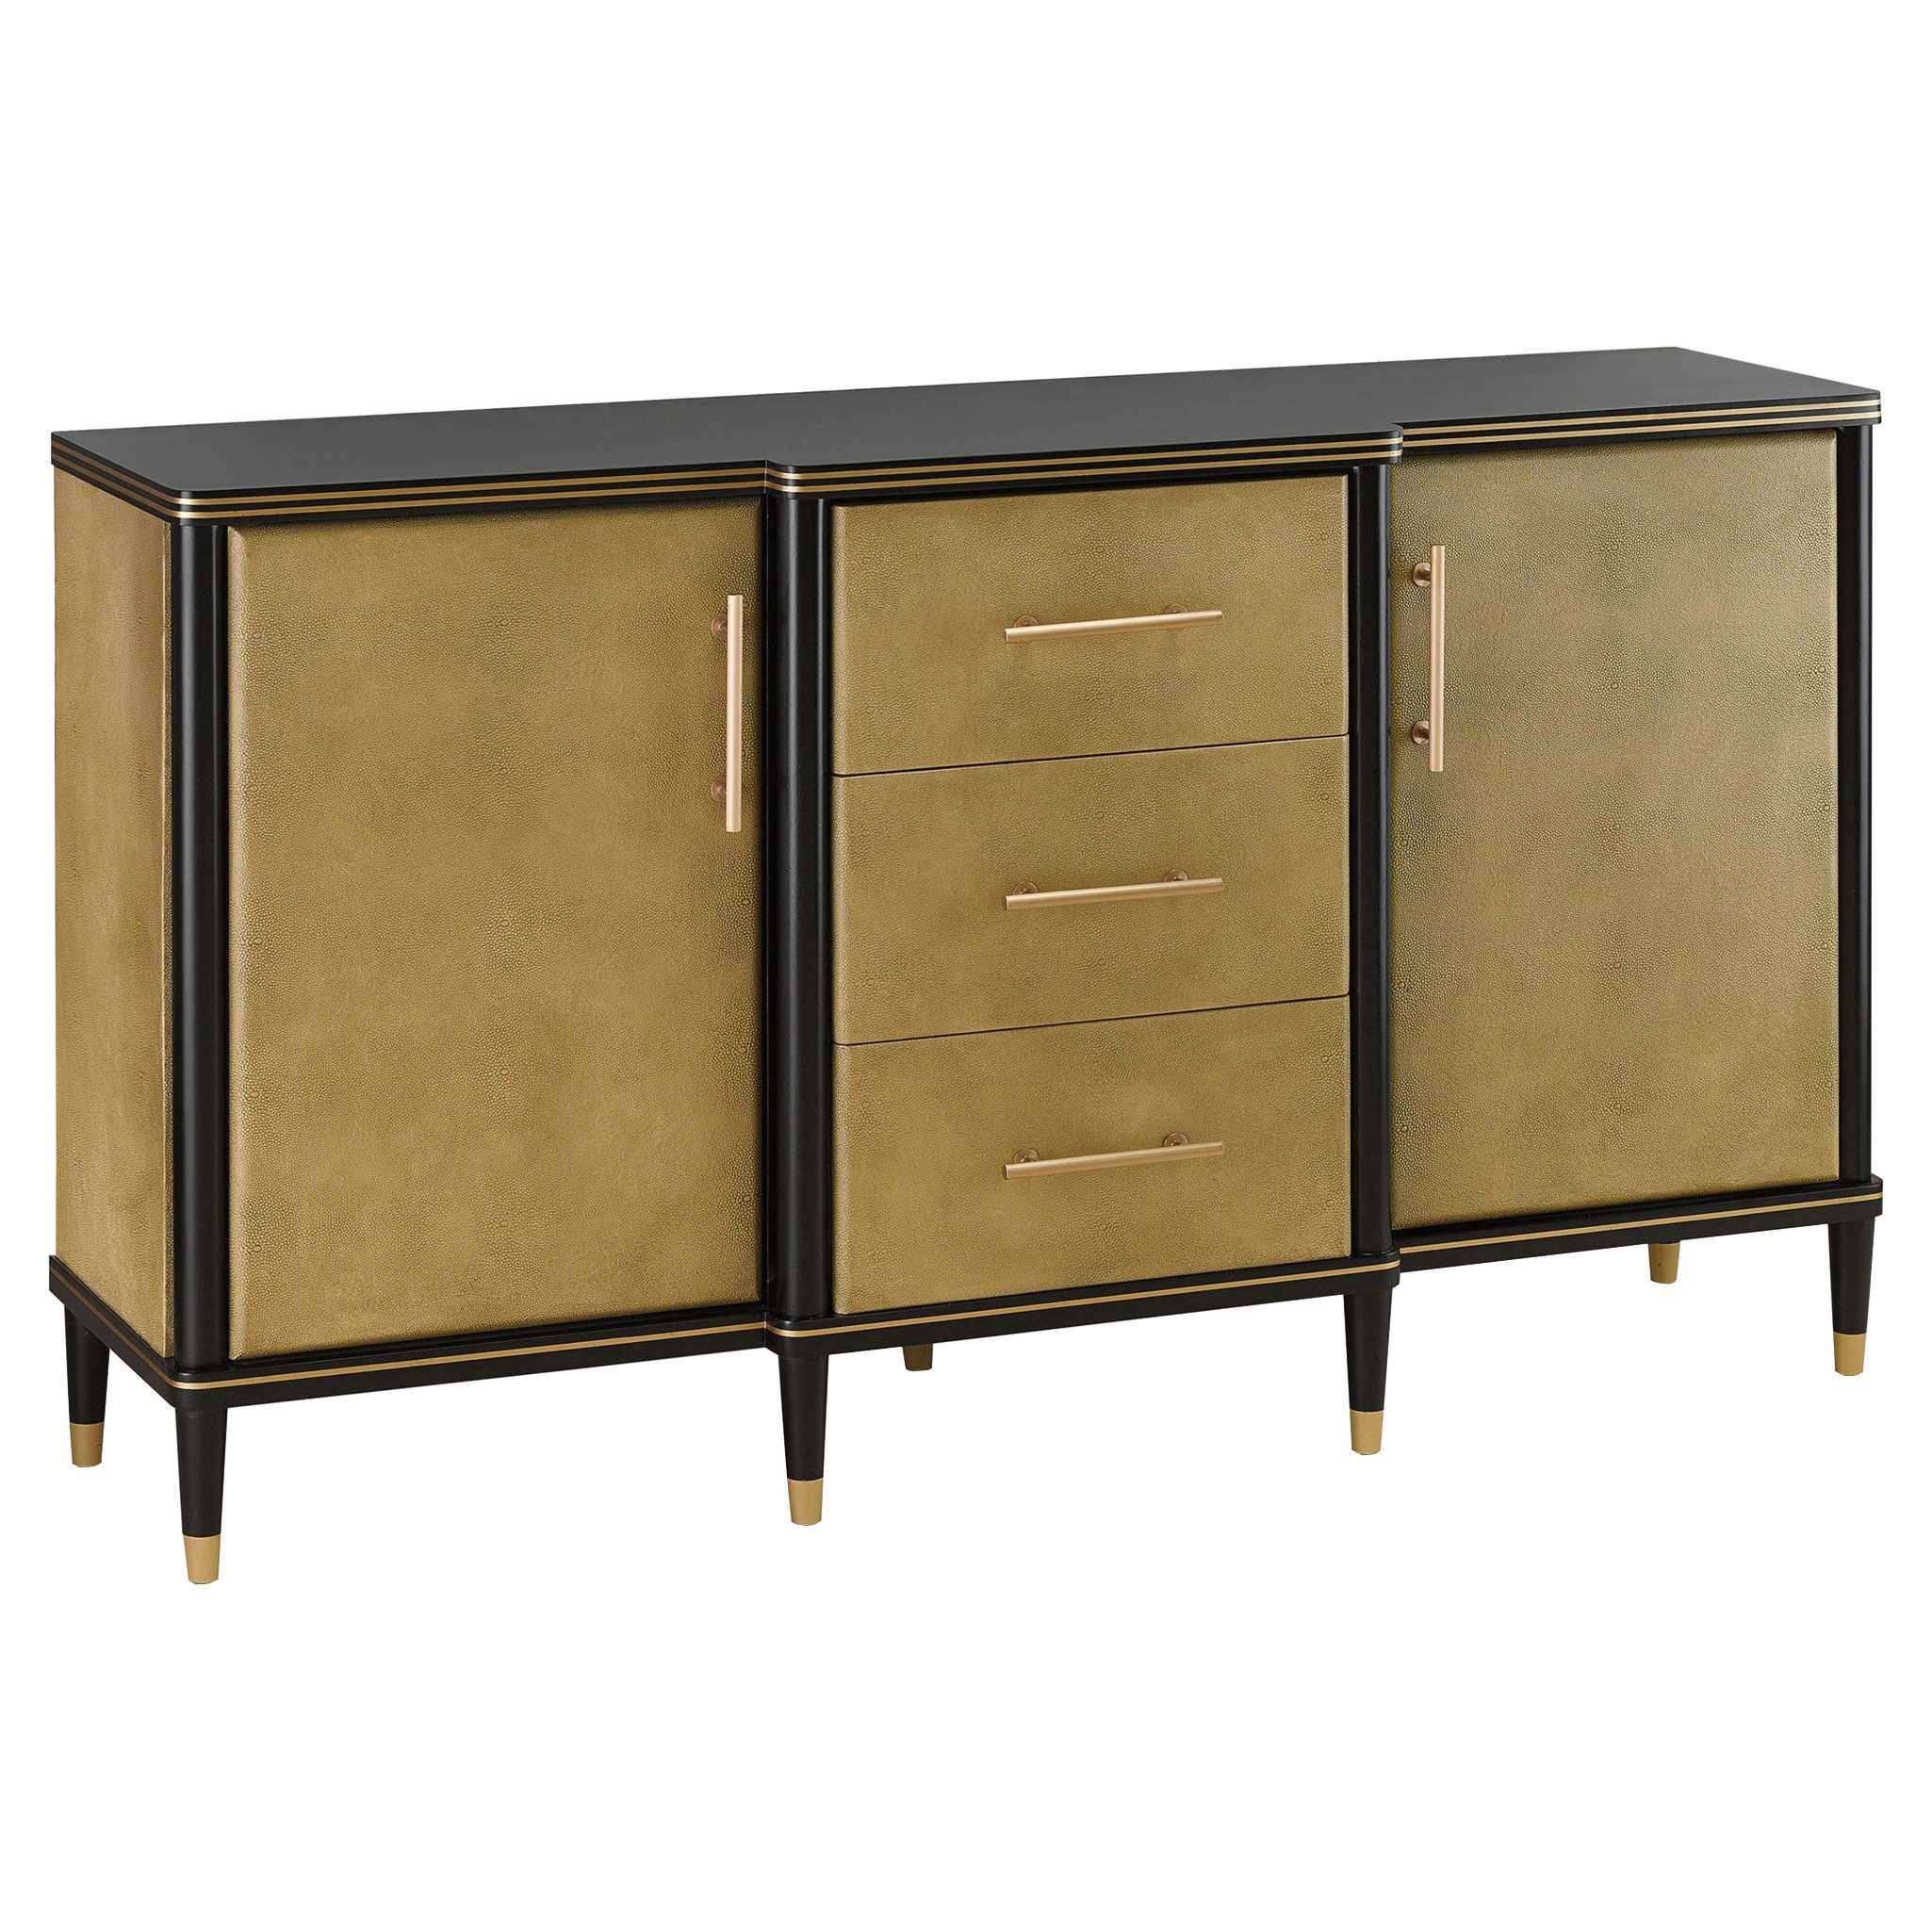 Svetlana Hollywood Regency Gold Faux Shagreen Black Credenza